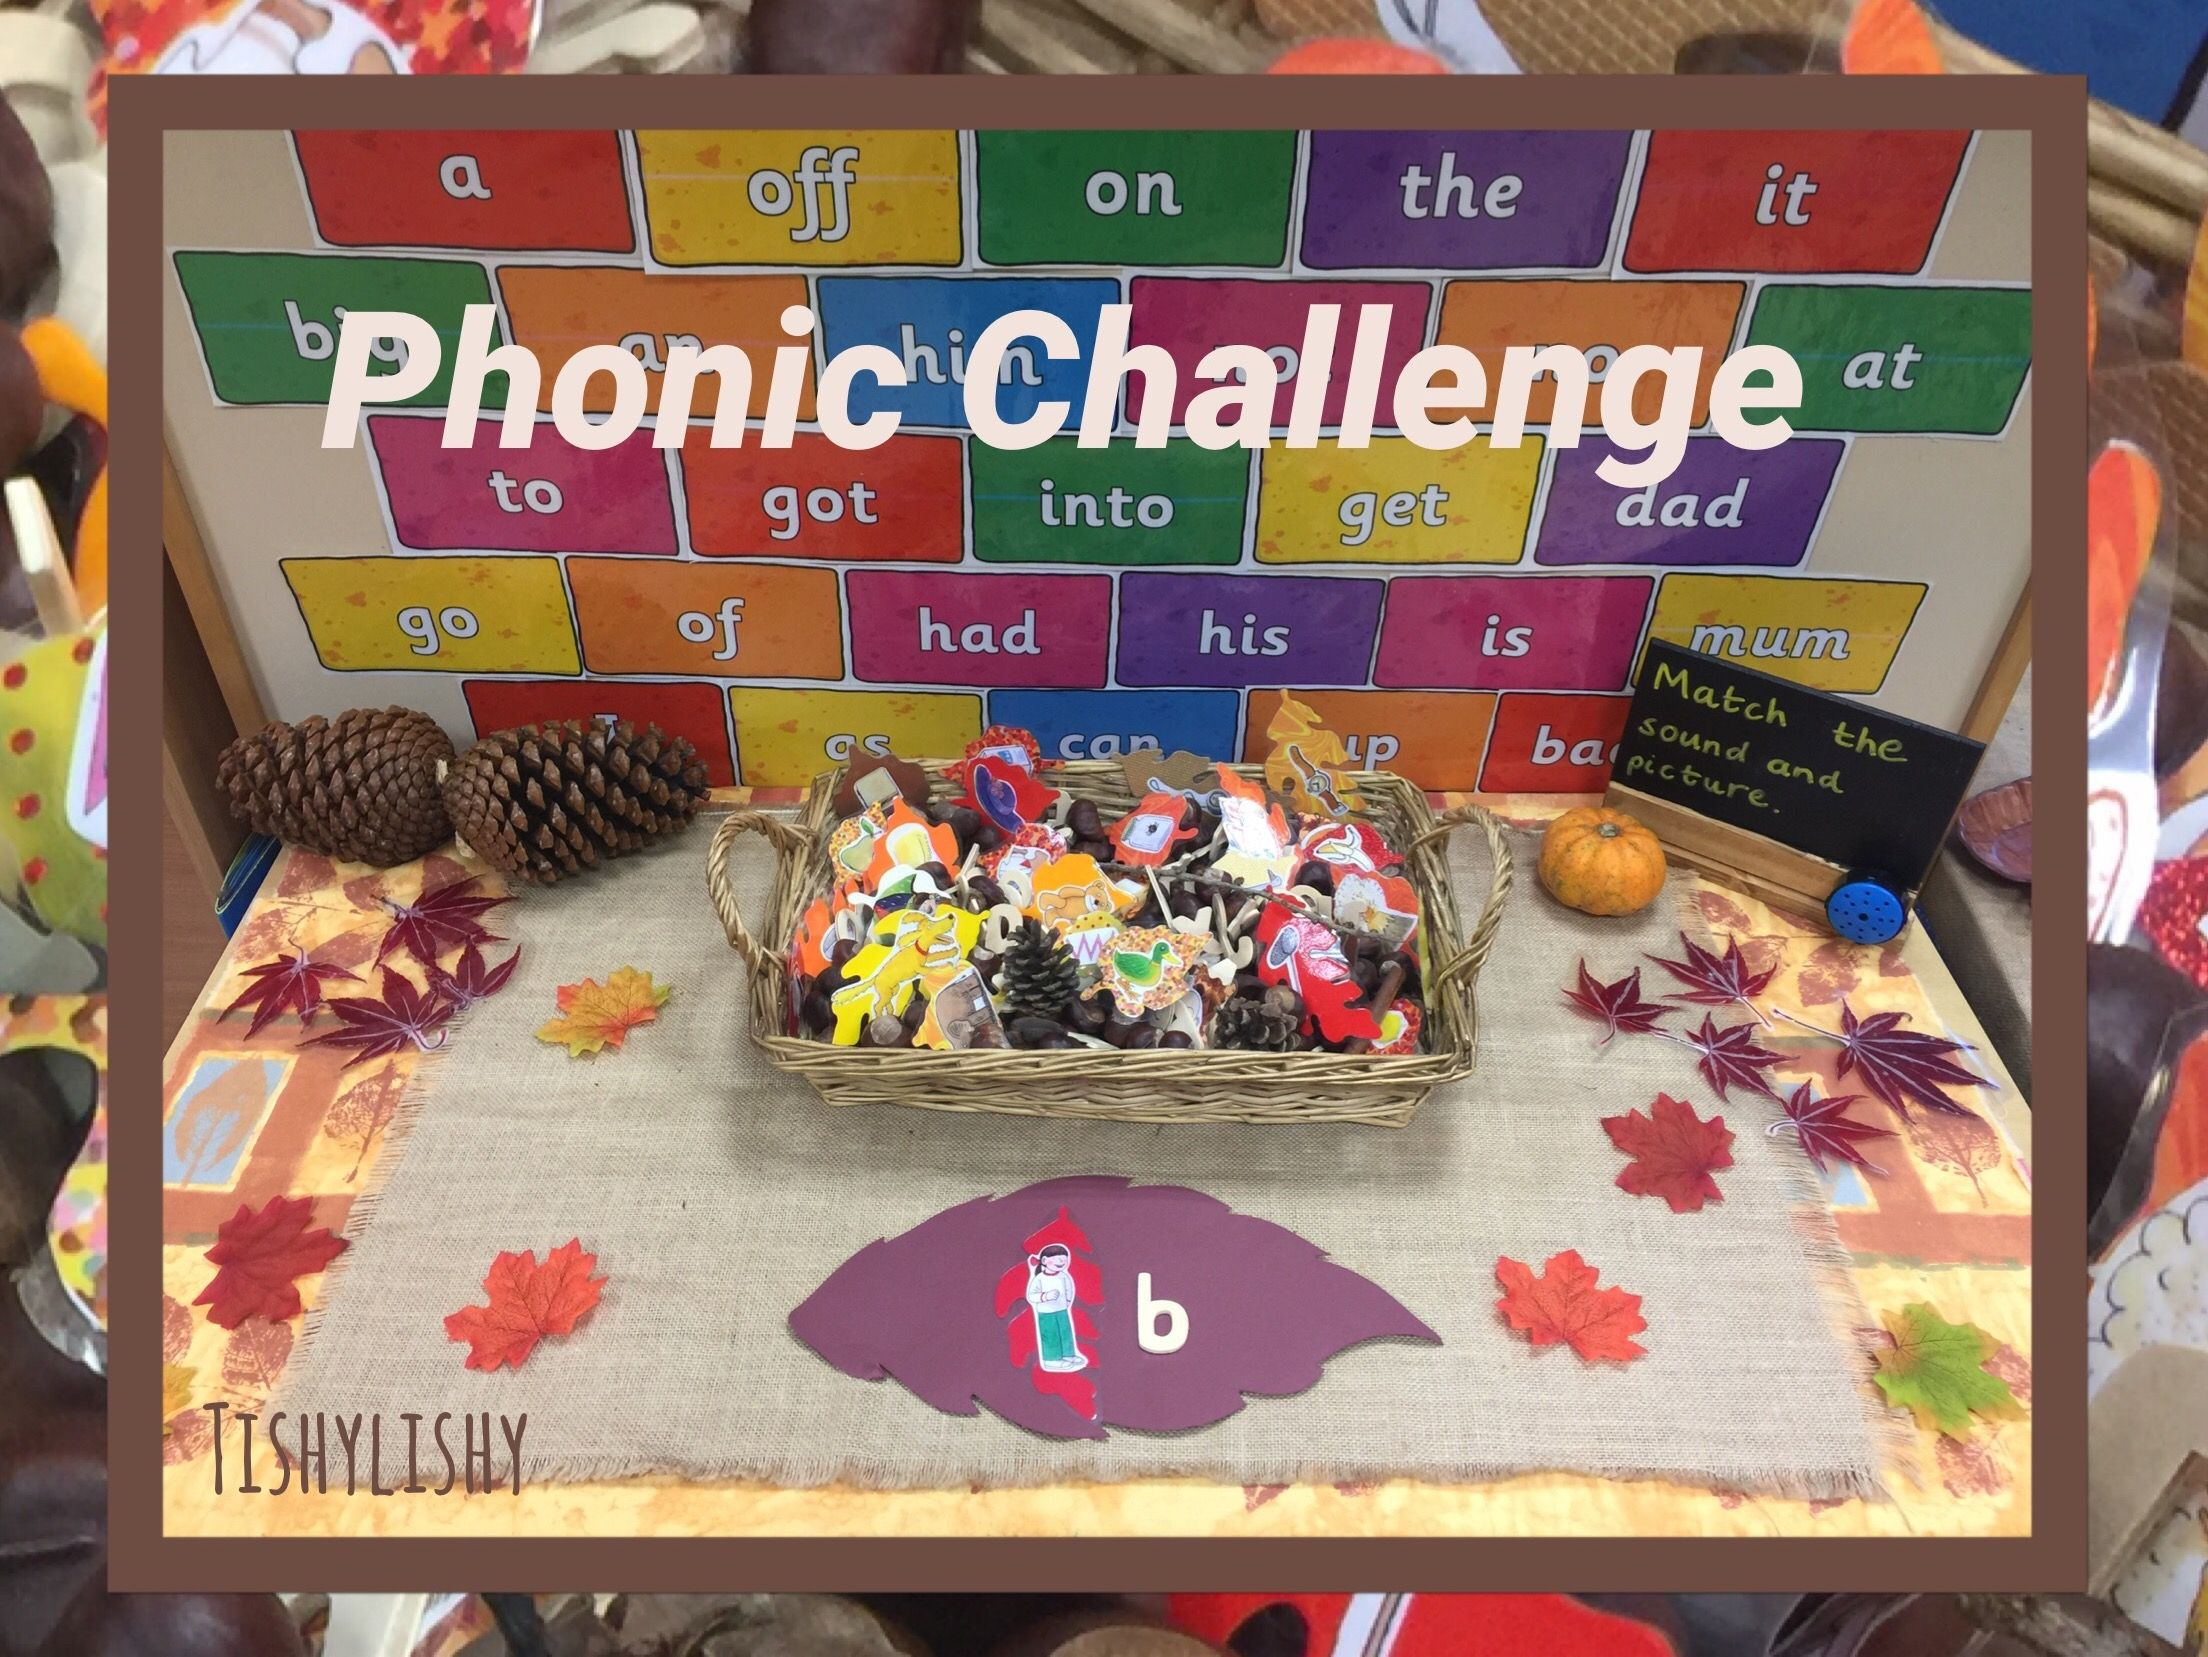 Phonic Challenge With Images On Leaves And Wooden Letters